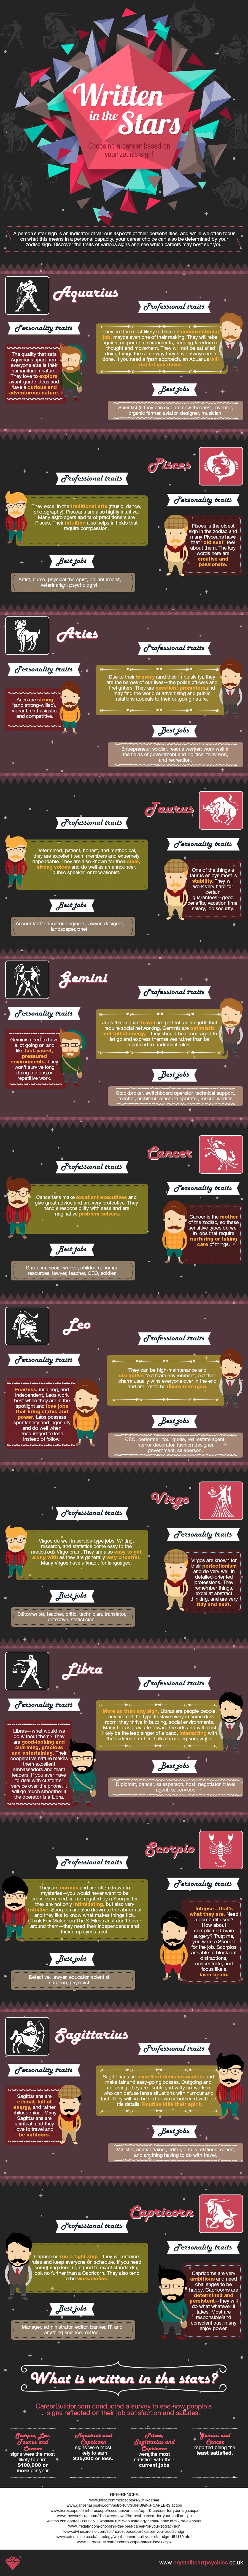 Choosing-career-based-on-your-zodiac-sign-Infographic